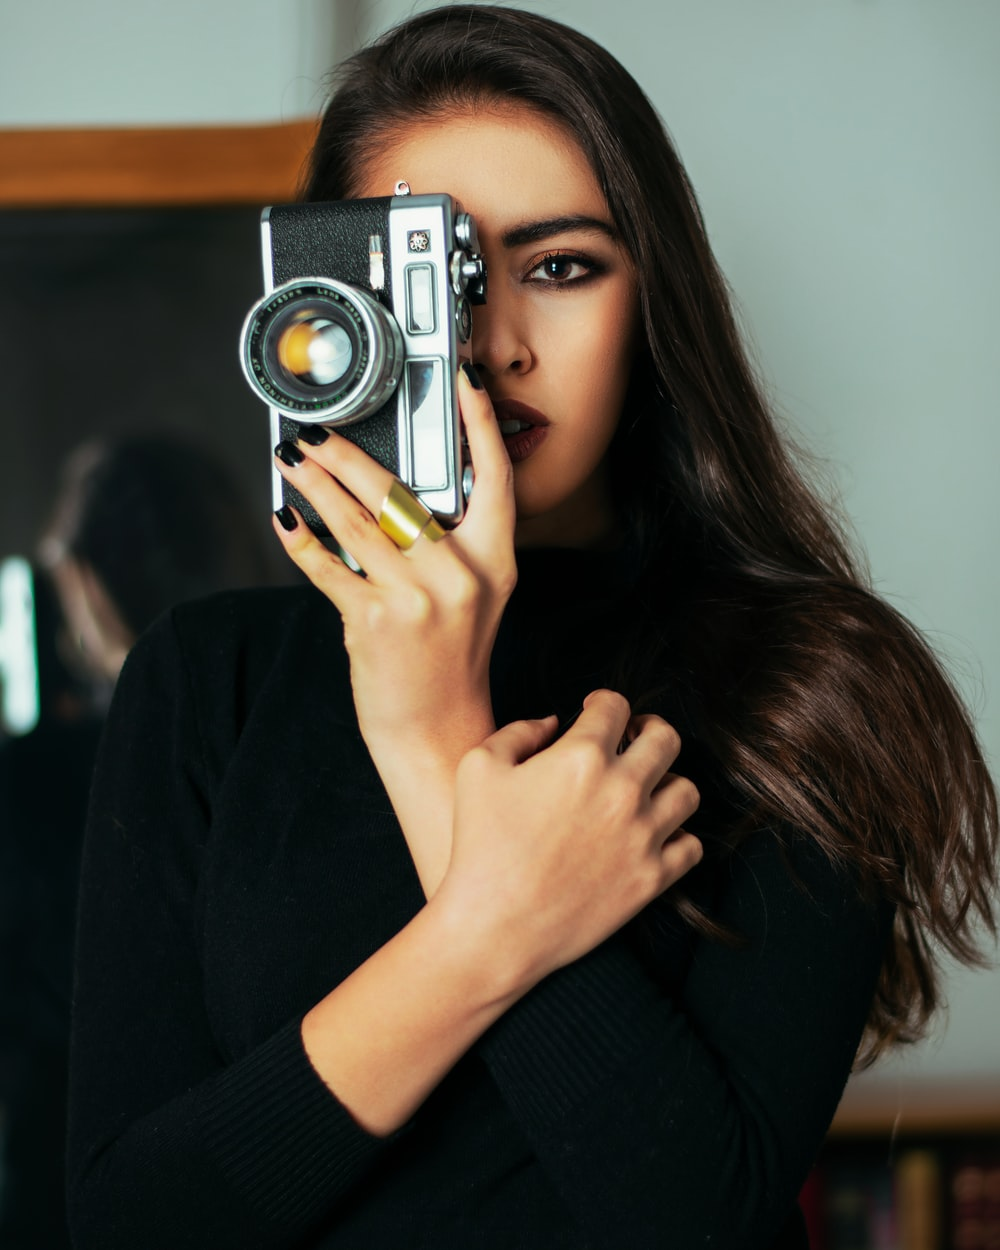 woman in black long sleeve shirt holding gray and black camera